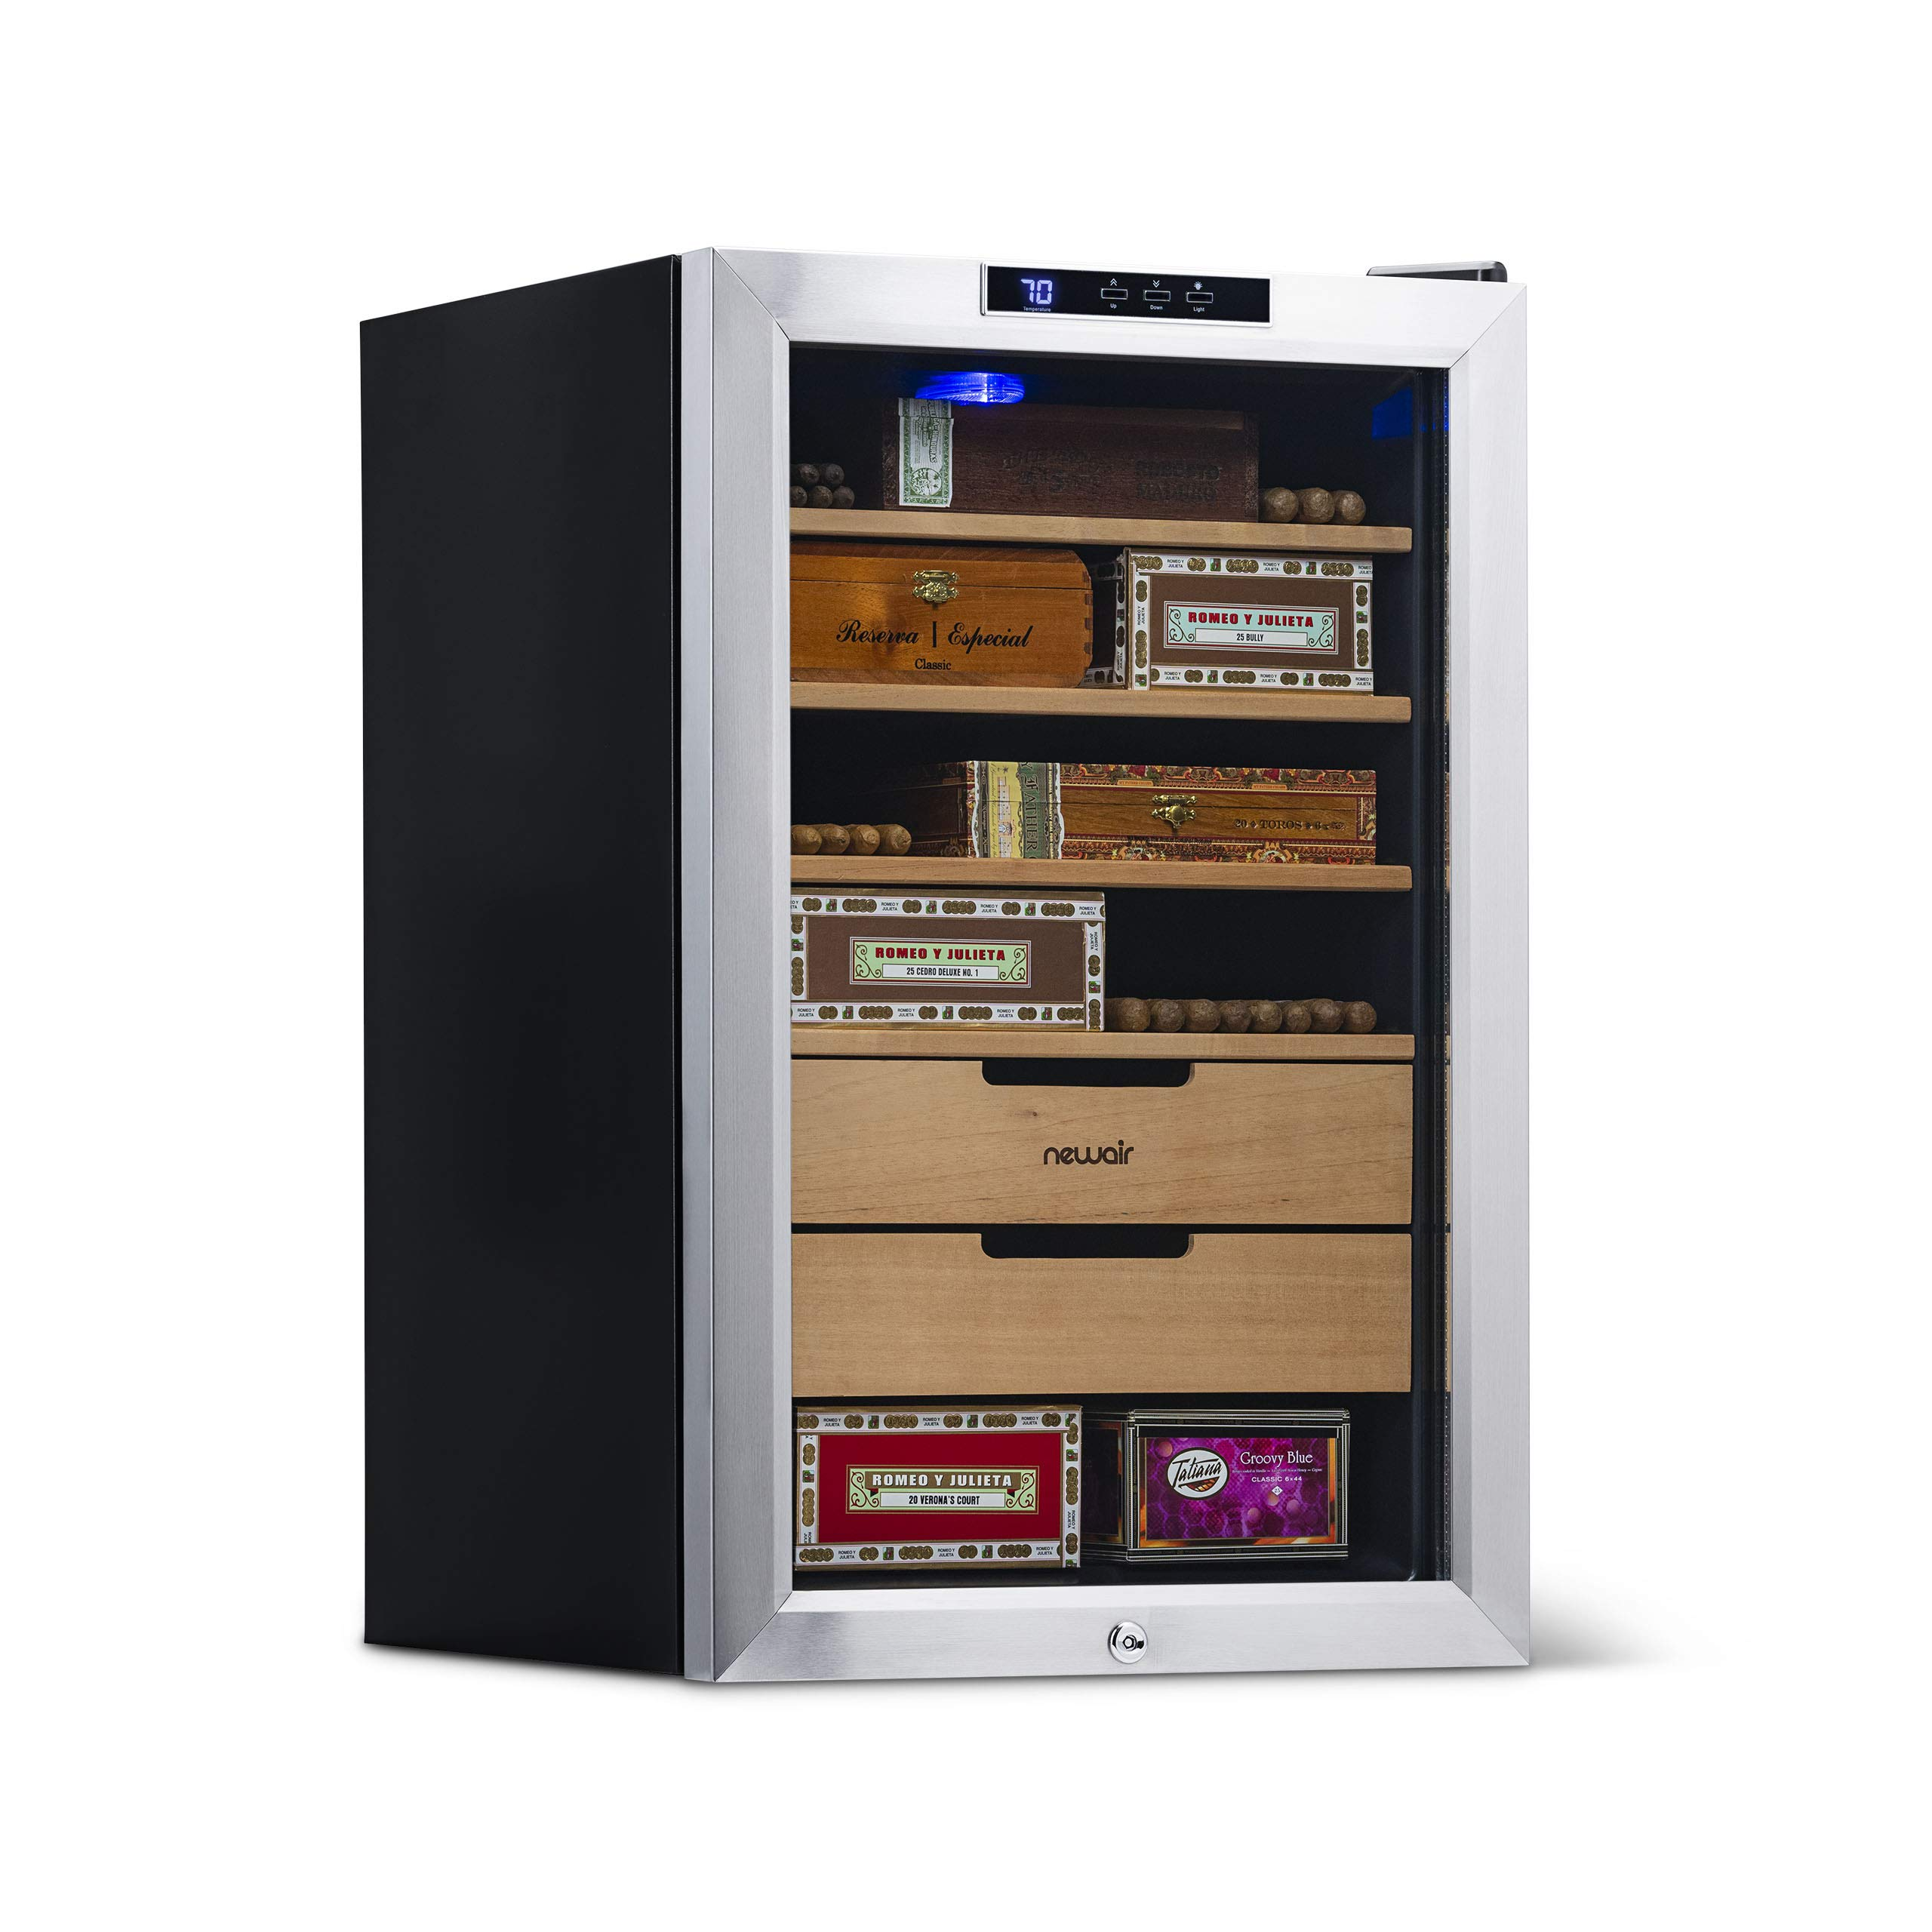 NewAir Cigar Humidor Climate Controlled with 400 Cigar Capacity - Digital Heating and Cooling Feature - Includes Spanish Cedar Shelves and Lock - CC-300H - Stainless Steel by NewAir (Image #1)